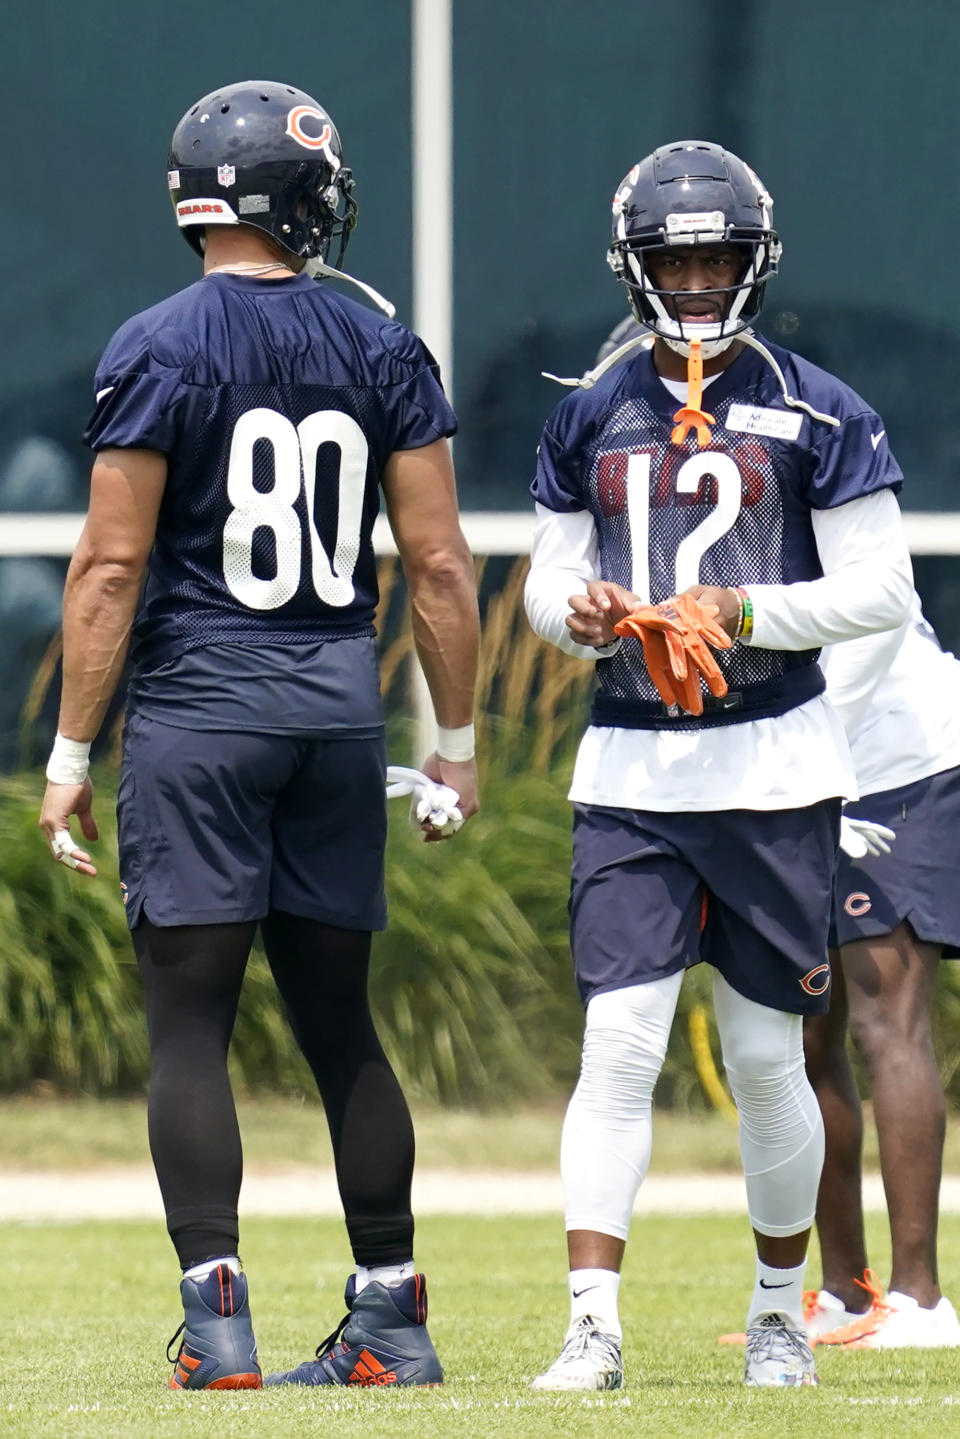 Chicago Bears wide receiver Allen Robinson II, right, talks with tight end Jimmy Graham during NFL football practice in Lake Forest, Ill., Wednesday, July 28, 2021. (AP Photo/Nam Y. Huh)